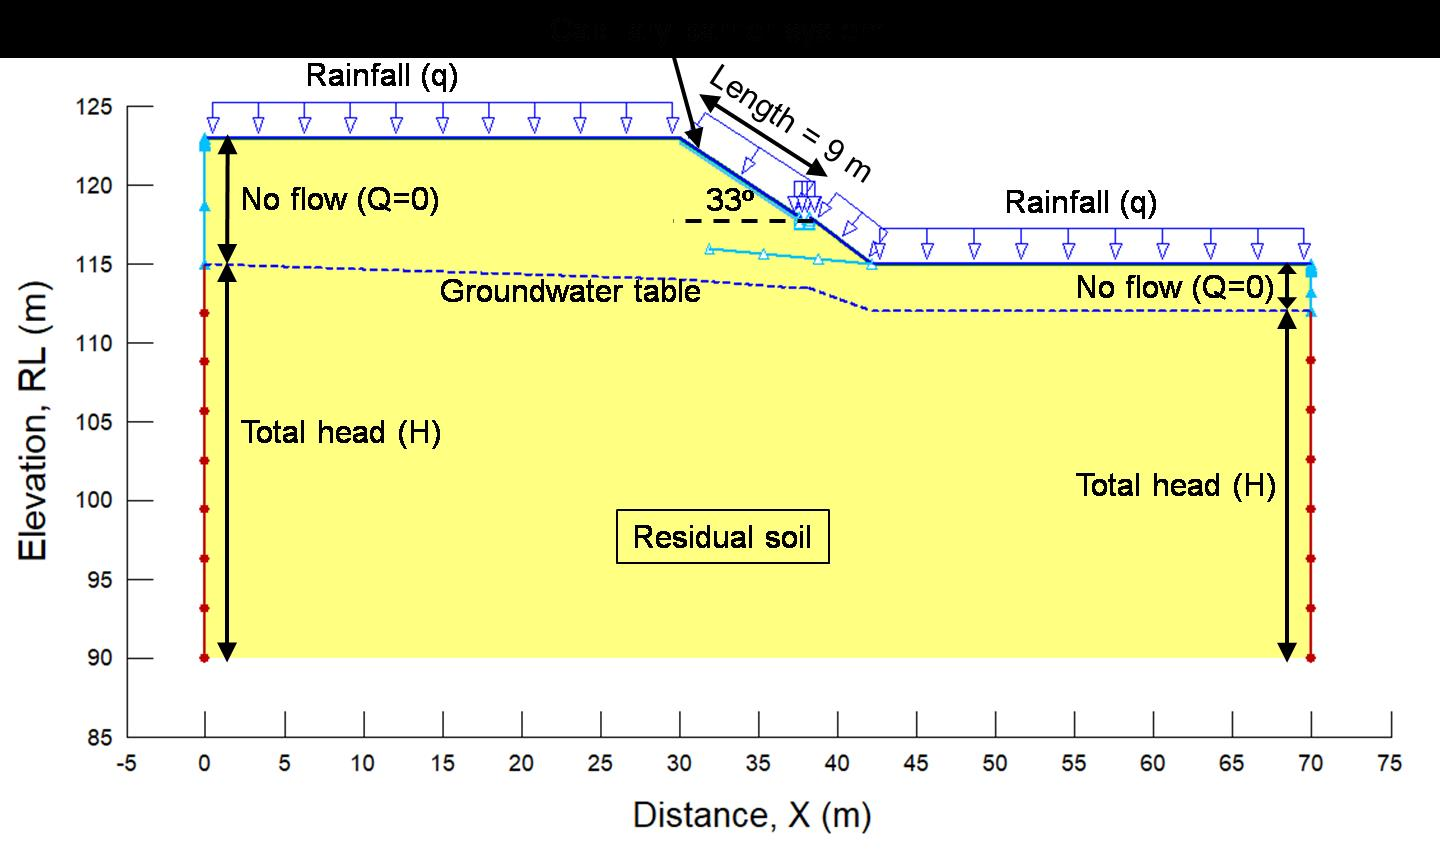 Numerical Simulation of Capillary Barrier System under Rainfall Infiltration in Singapore